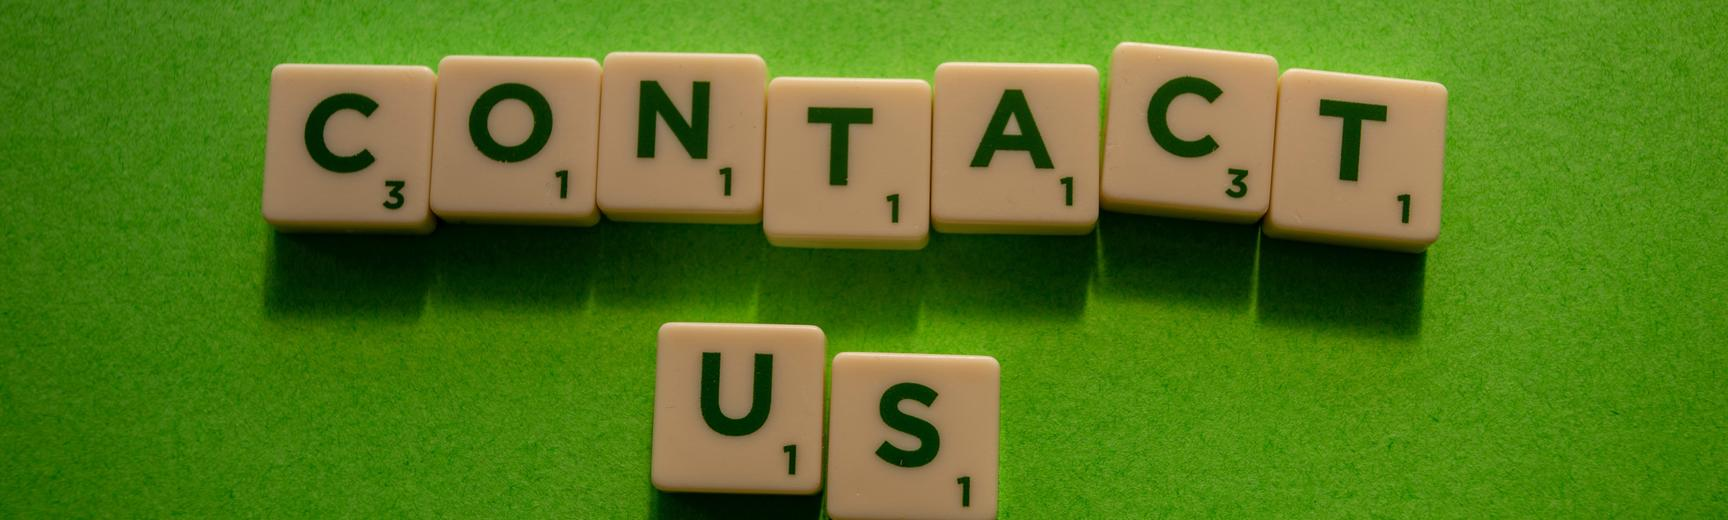 Scrabble pieces spelling contact us